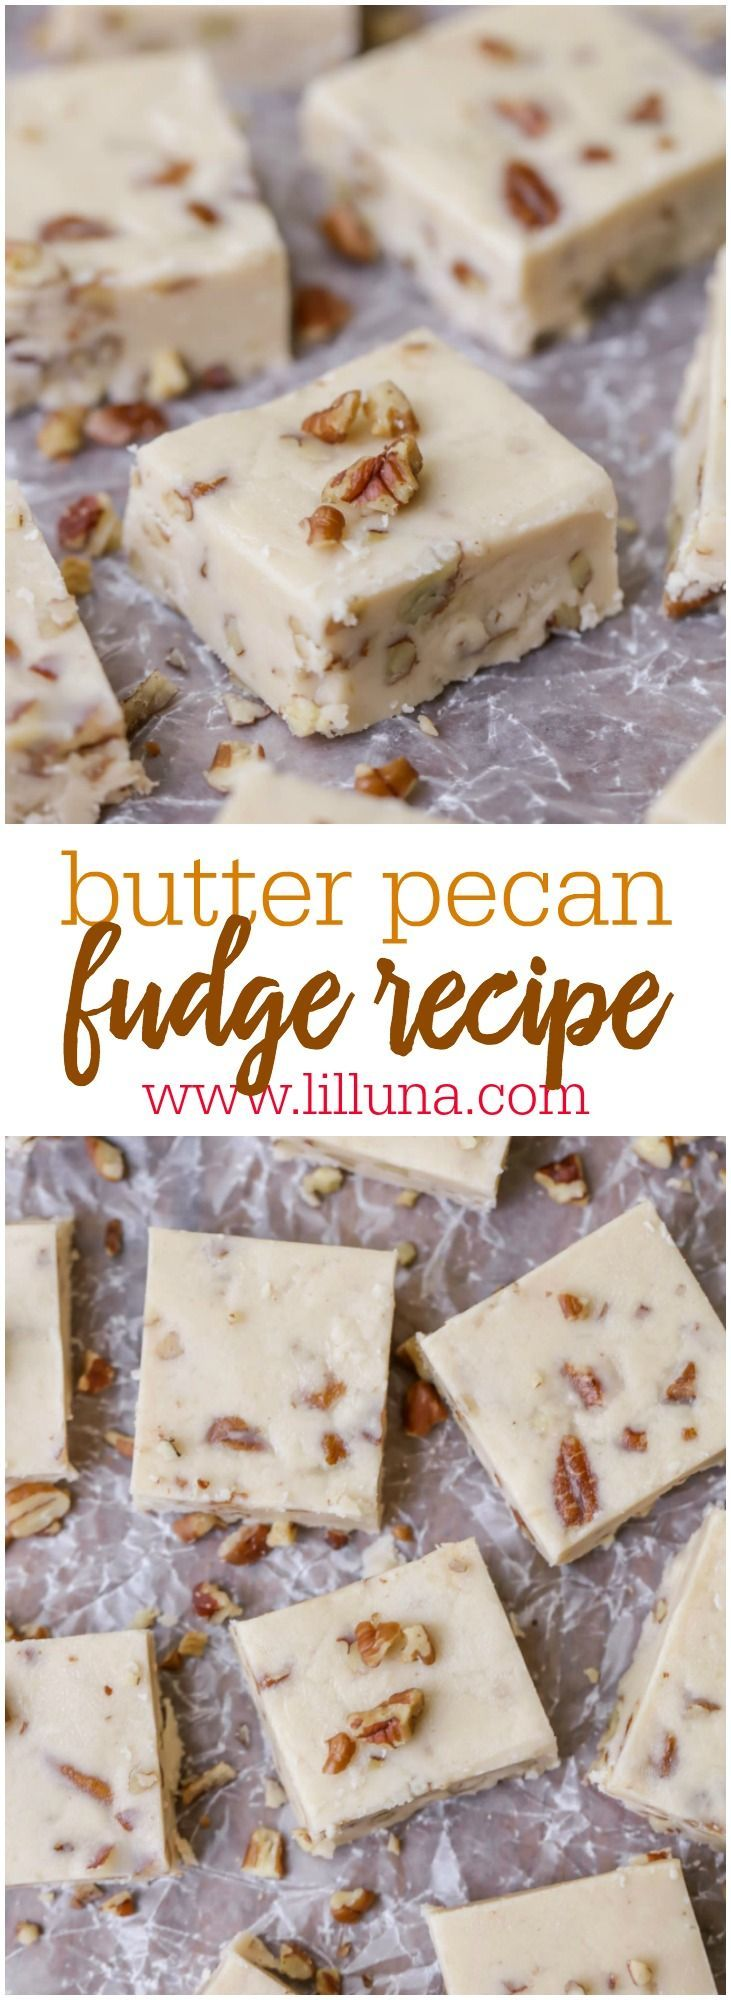 Pecan Fudge The BEST Butter Pecan Fudge - this fudge recipe is perfect to enjoy at the holidays or to gift to friends and neighbors.The BEST Butter Pecan Fudge - this fudge recipe is perfect to enjoy at the holidays or to gift to friends and neighbors.